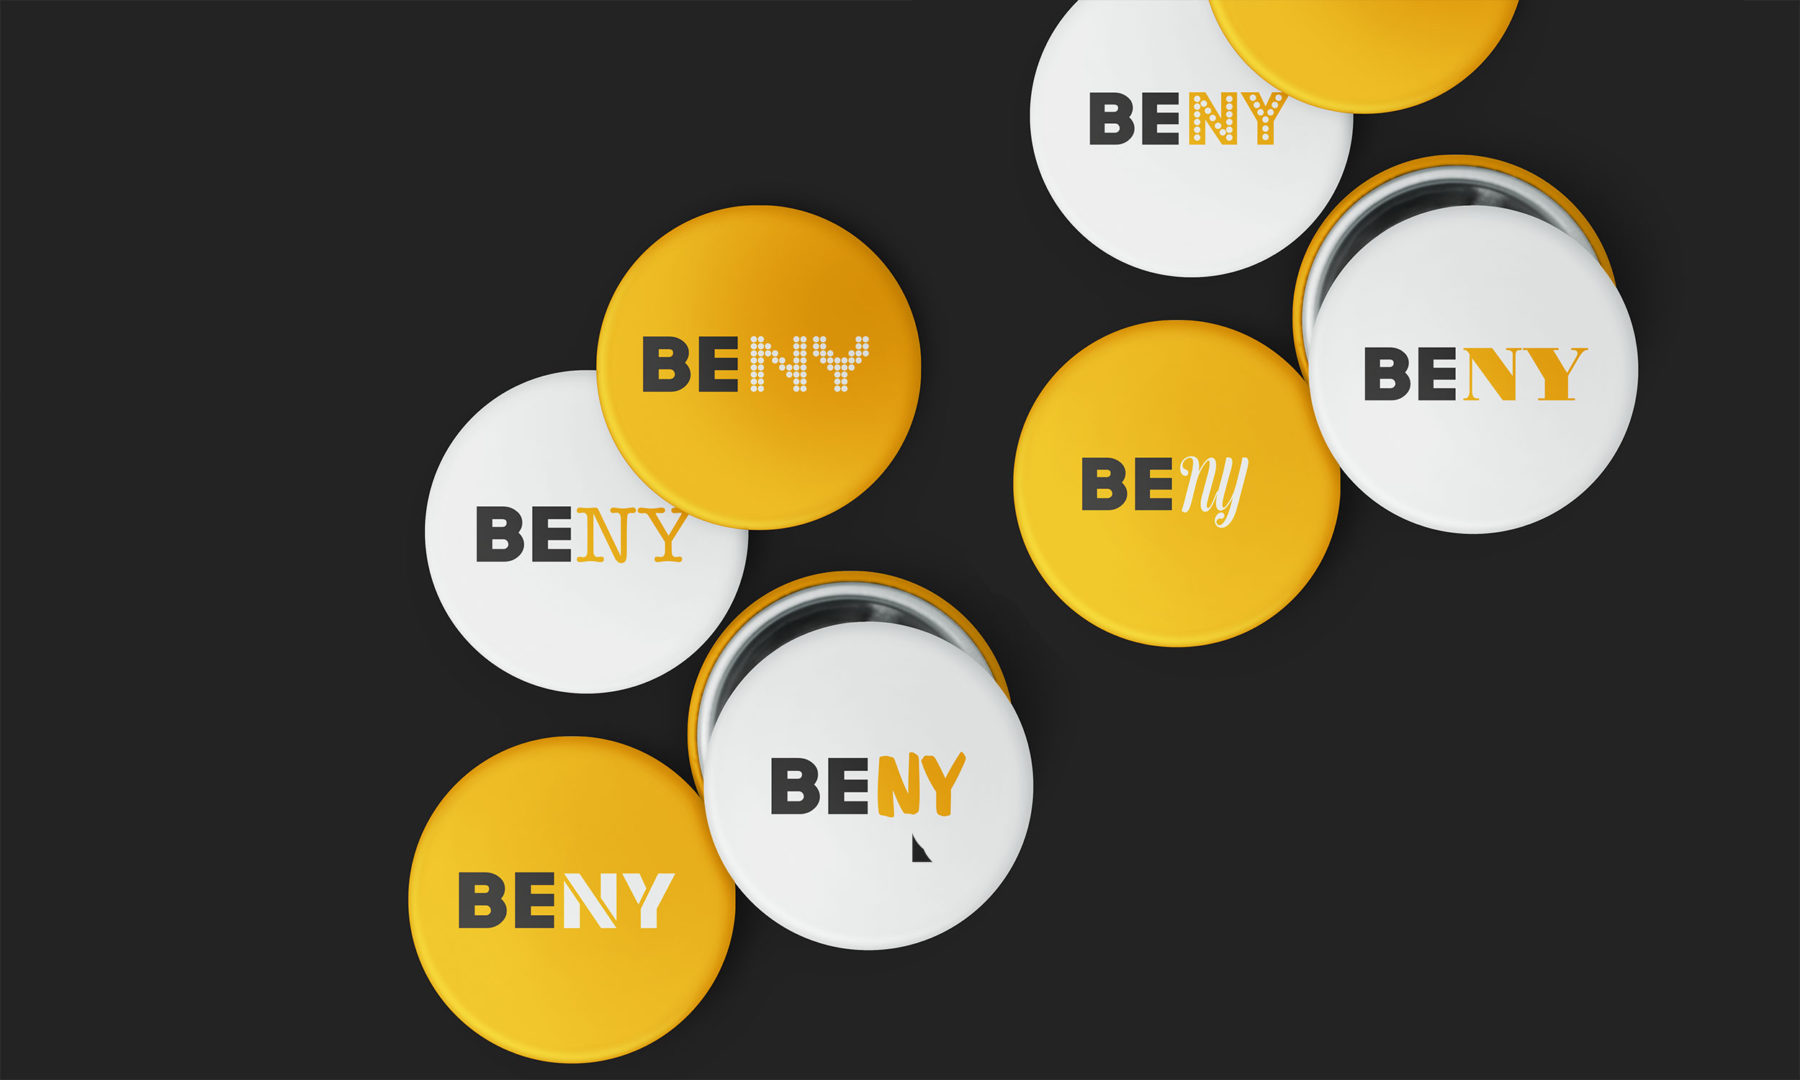 BENY buttons